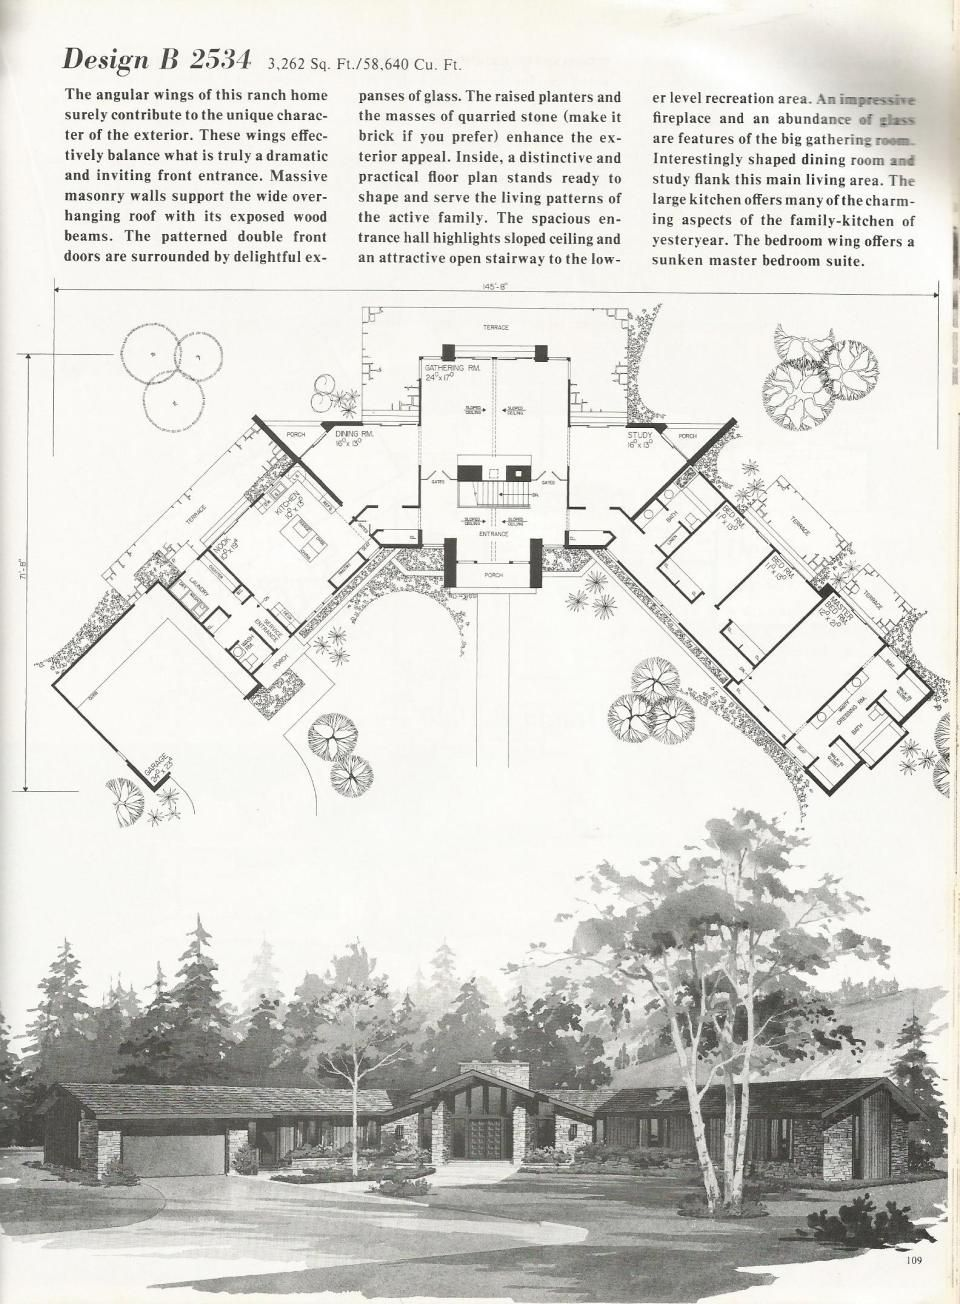 Vintage House Plans Luxury Contemporary Homes Vintage House Plans Mid Century Modern House Plans Modern Floor Plans